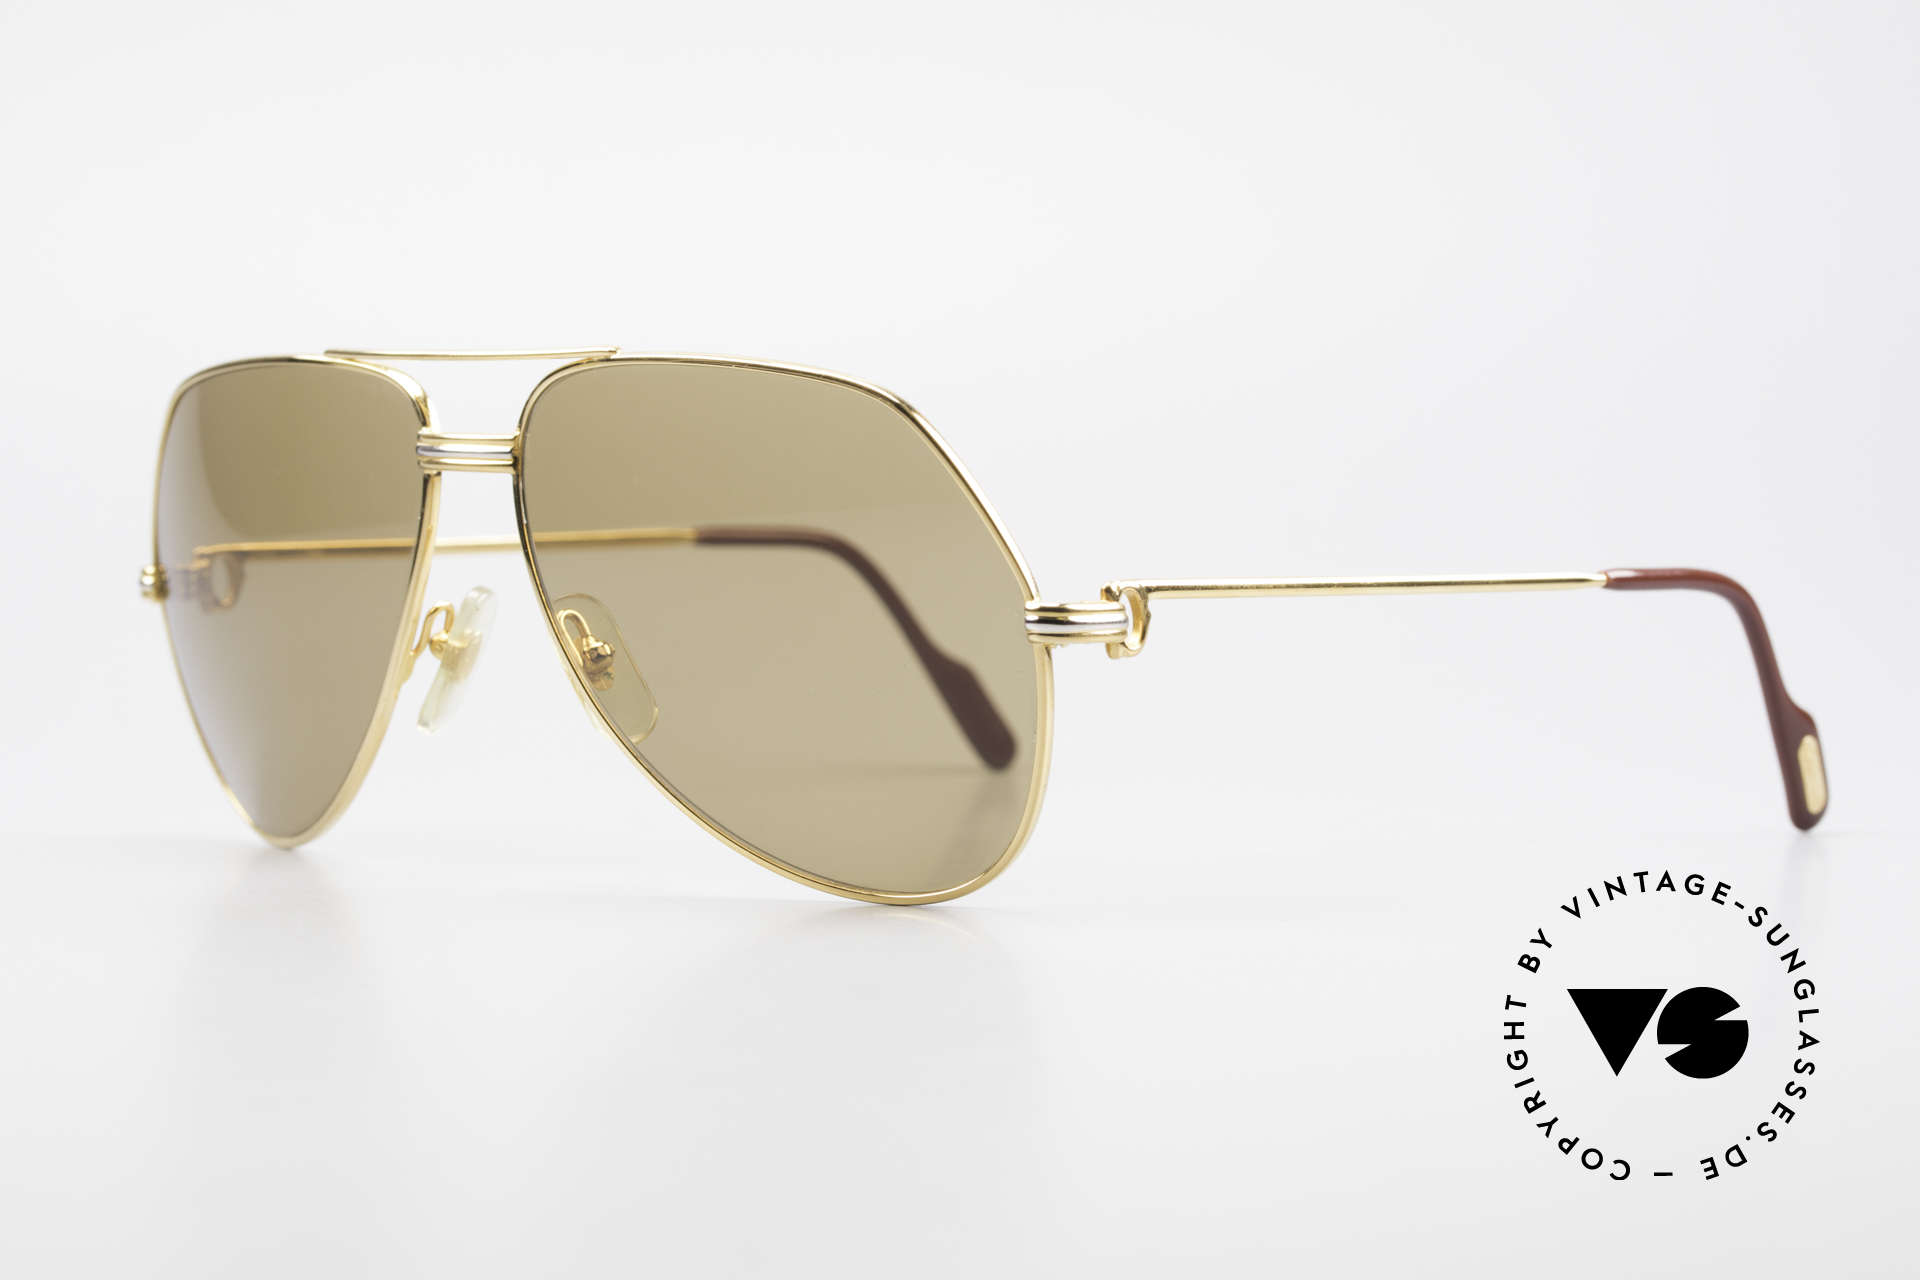 Cartier Vendome LC - L Original Cartier Mineral Lenses, 22ct gold-plated (with LC decor): LARGE size 62-14, 140, Made for Men